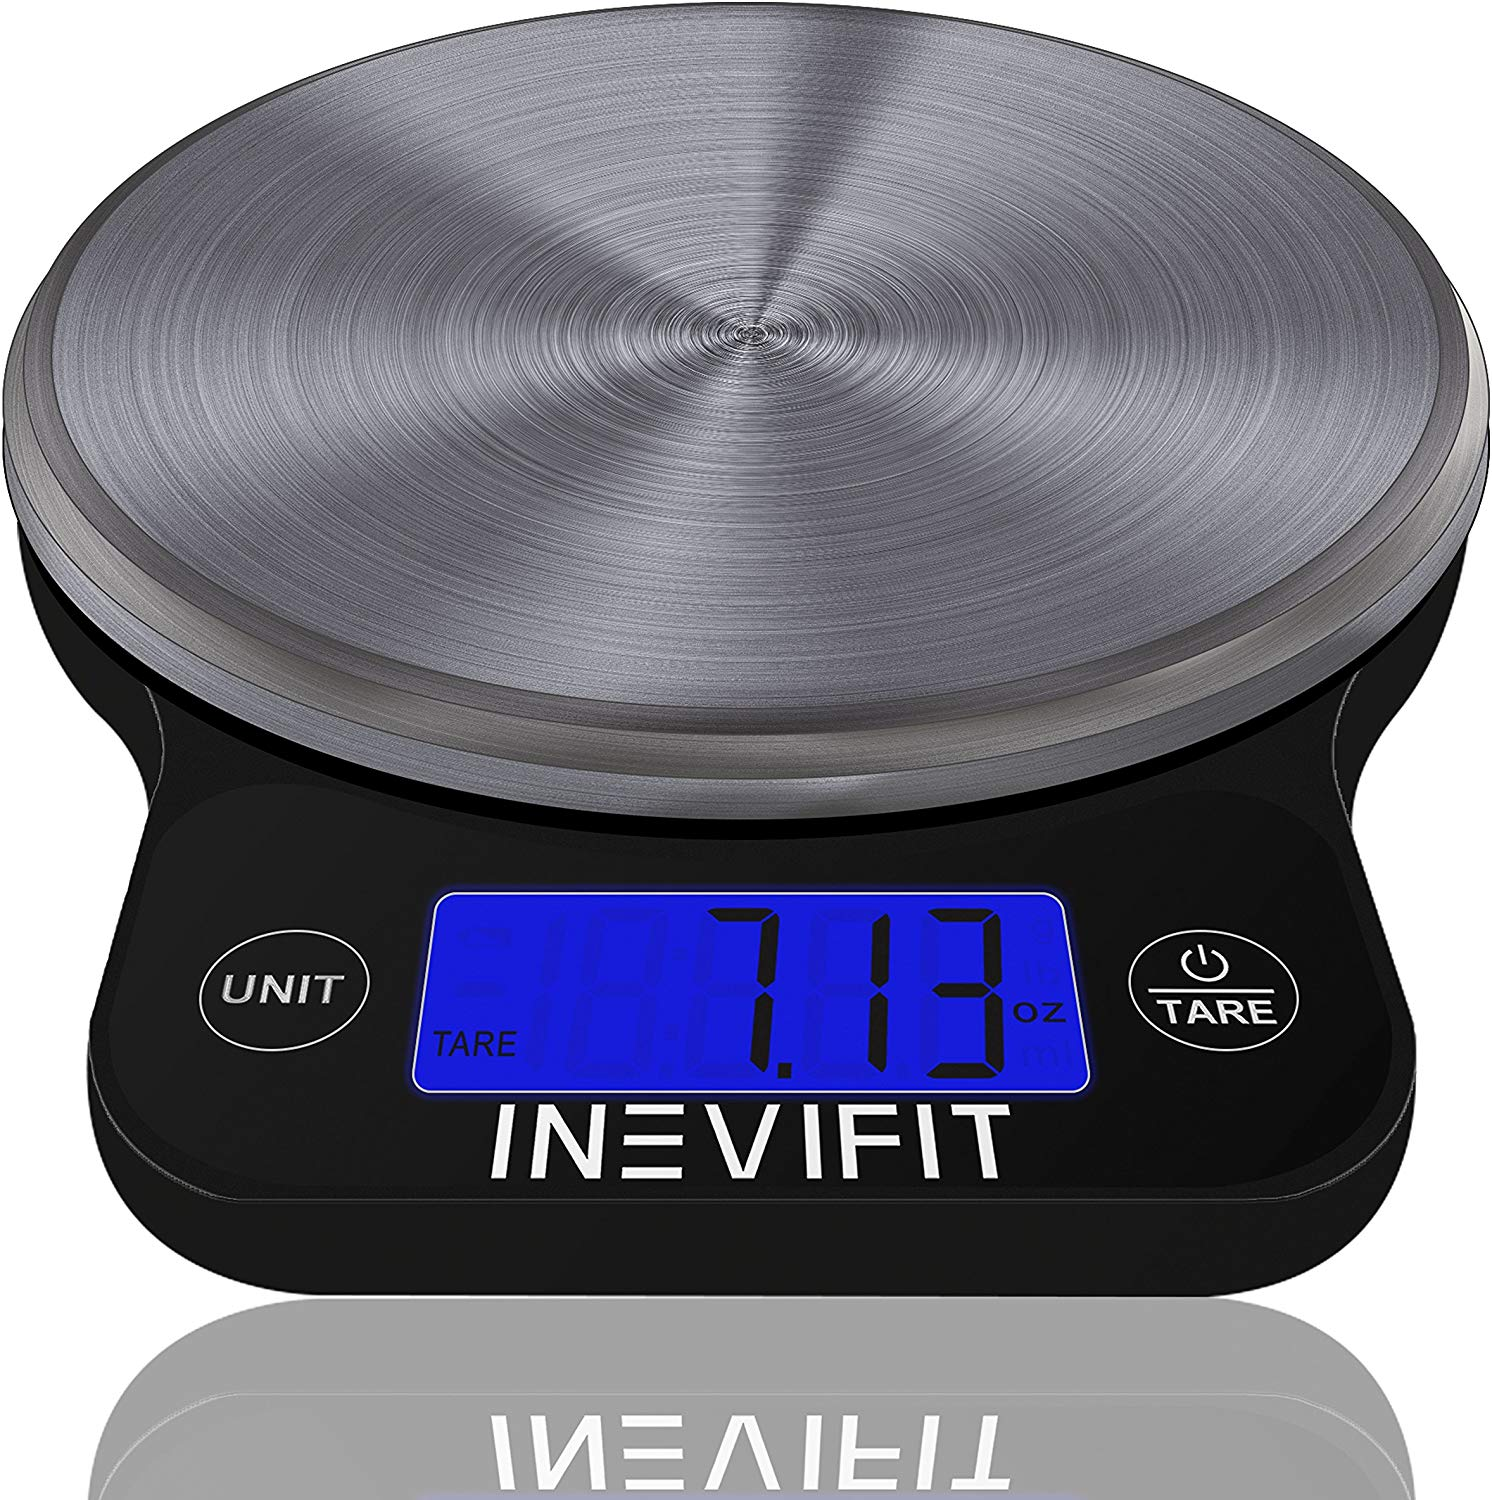 Inevifit digital food scale